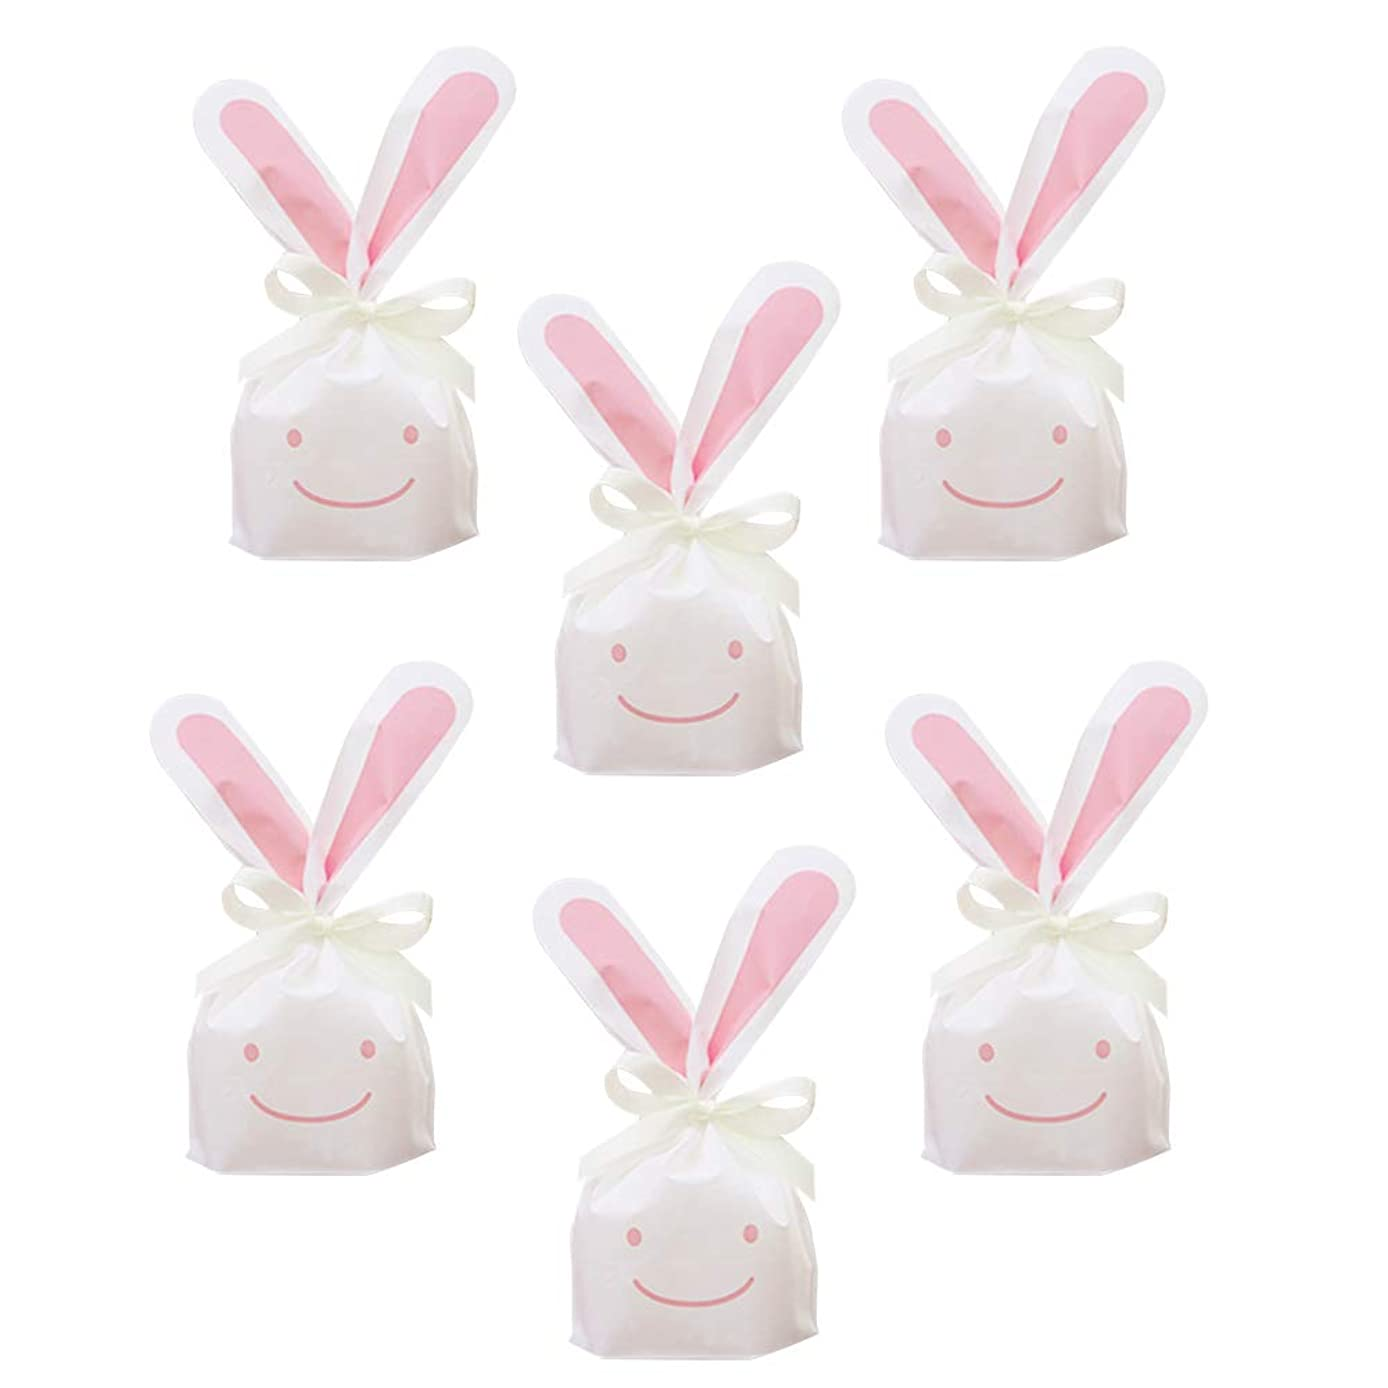 50Pcs Bunny Gift Bags Candy Wrap Bags Party Favors Supplies Rabbit Ear Treat Bags Candy Gift Wrap Bags with Twist Ties for Kids Party